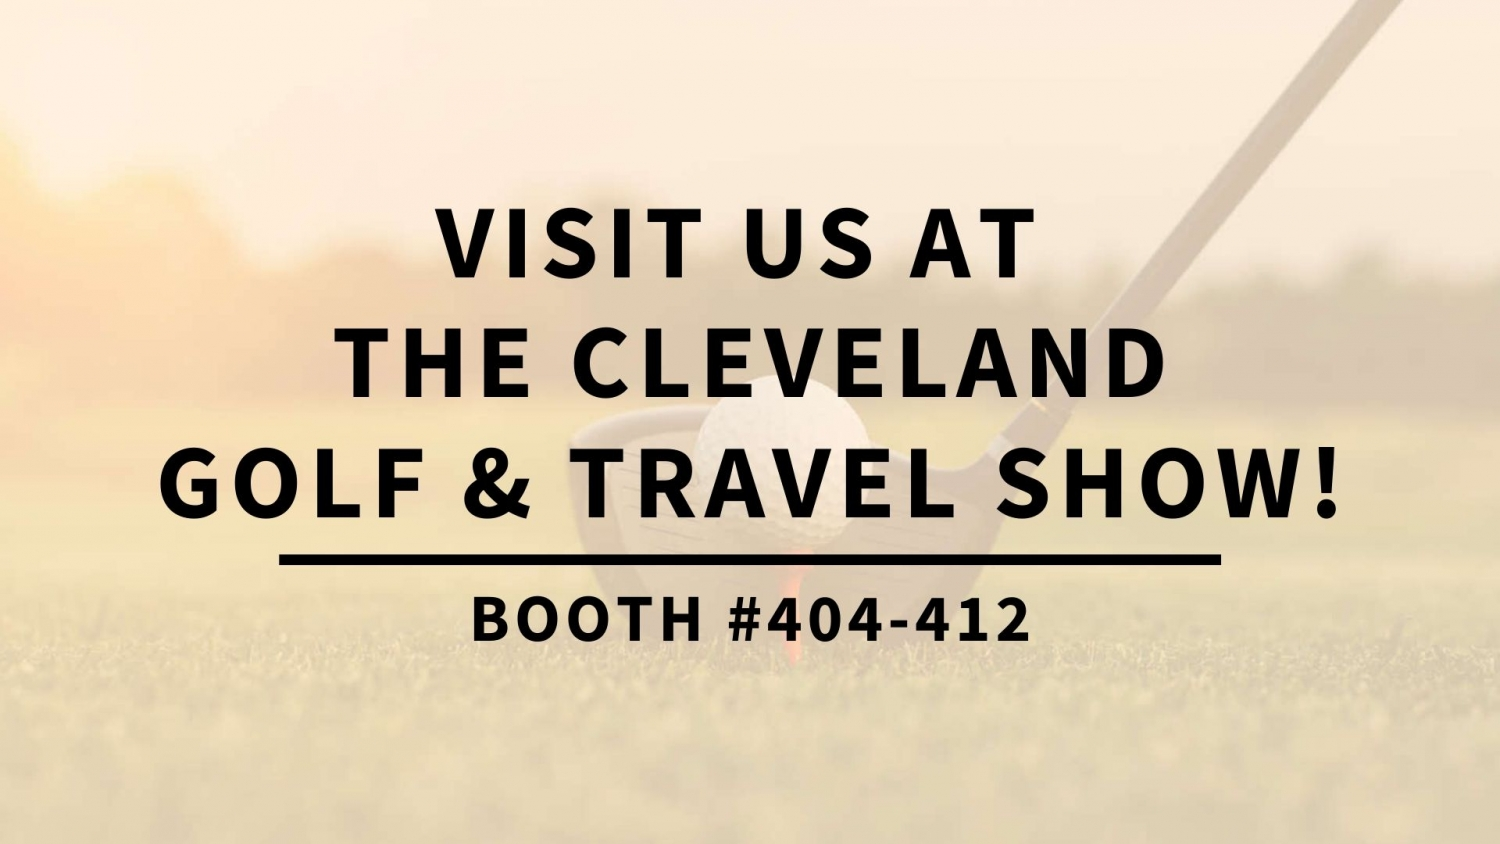 Visit us at the Cleveland Golf Show!